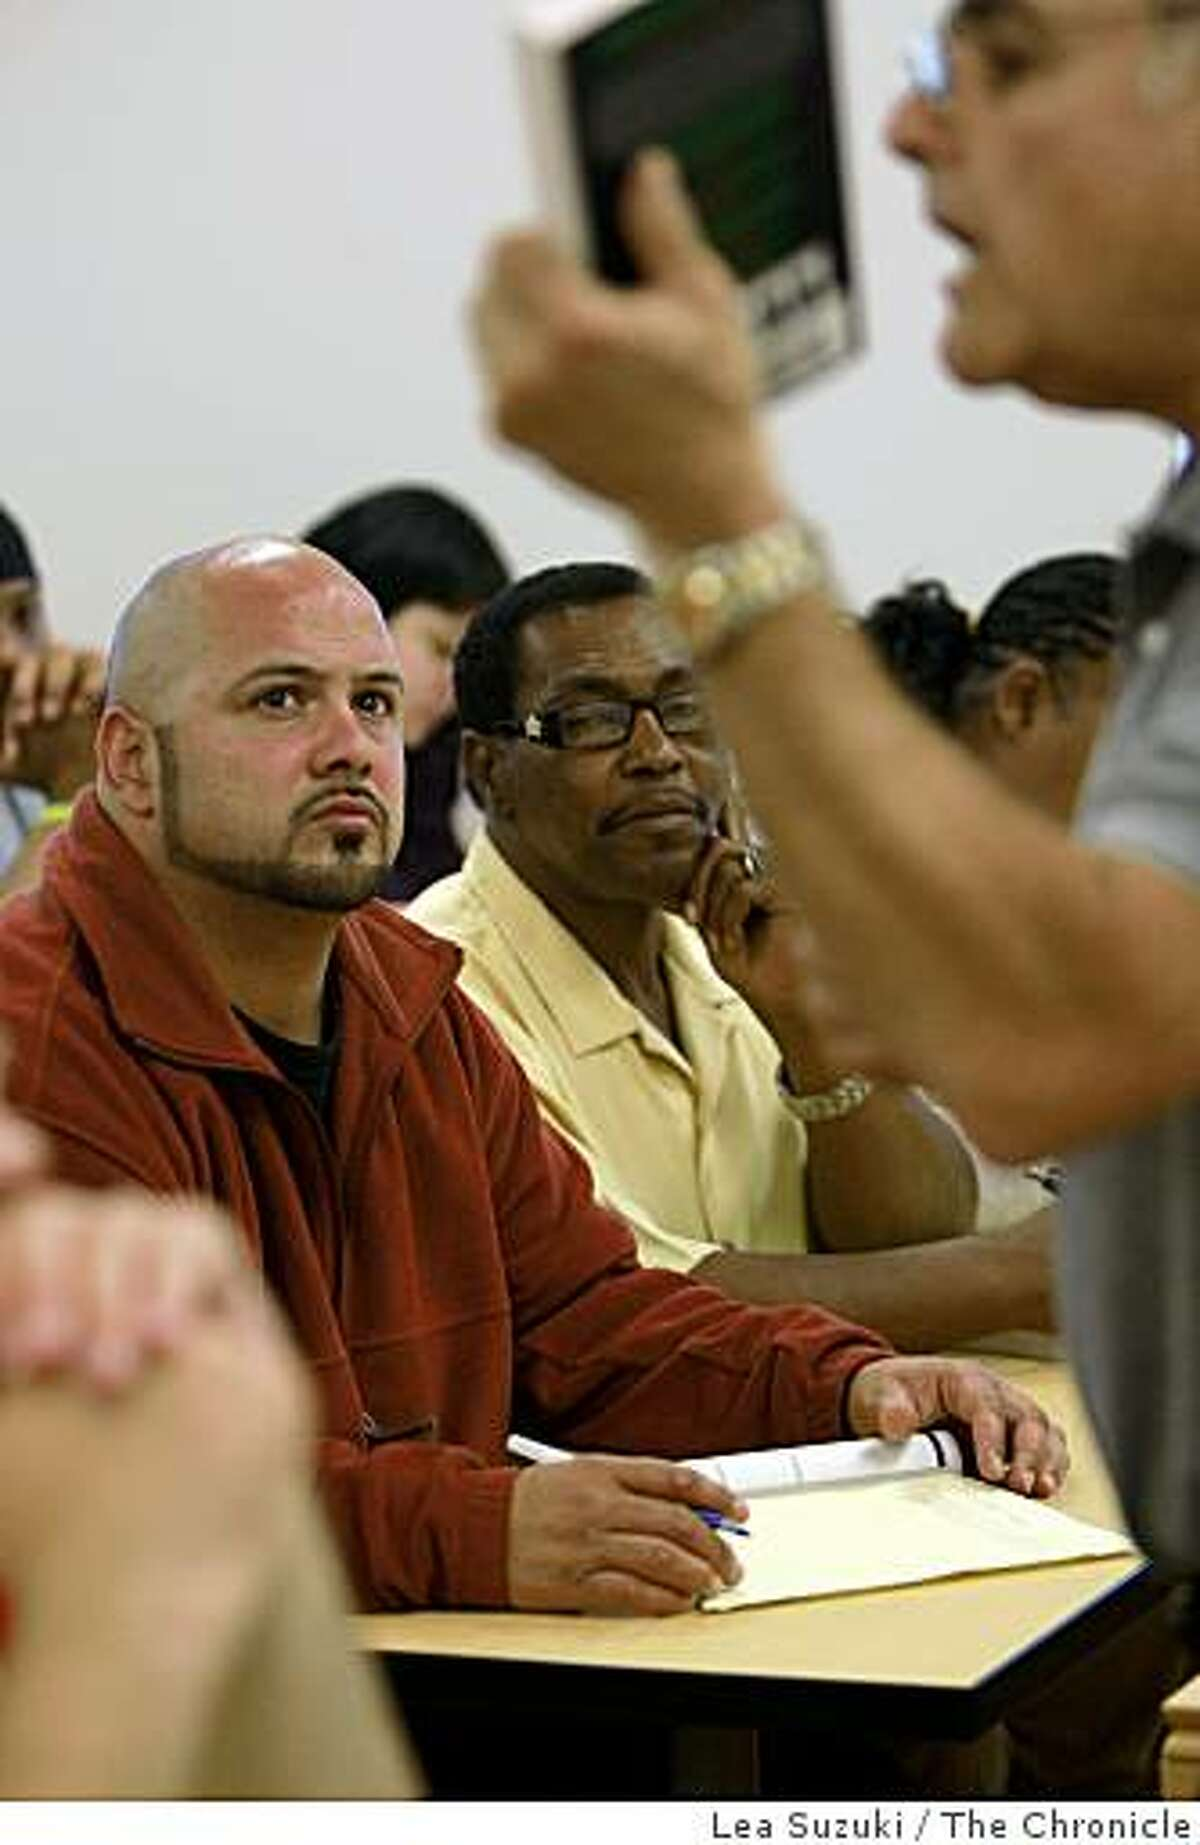 Alex Humphrey (in red jacket) and Eli Crawford (in yellow shirt) listen to Professor Frederick Chavaria, Department Chair Administration of Justice and Fire Science Technology, lecture during class at the City College Mission Campus in San Francisco, Calif. on Tuesday, June 16, 2009.